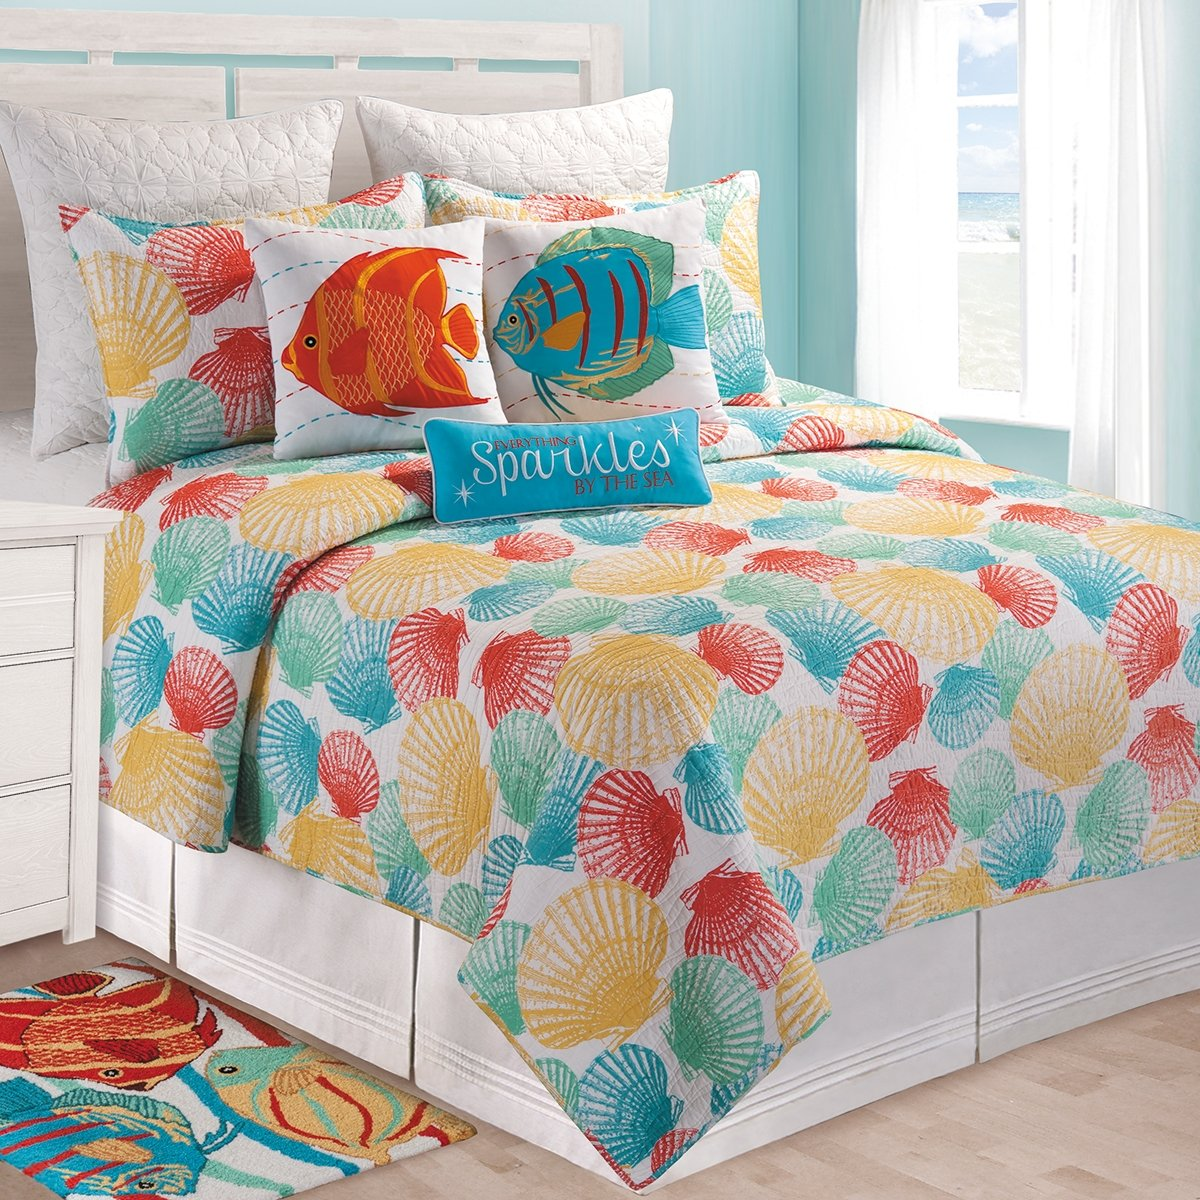 C&F Home 82088.8686 Captiva Island for Q Quilt, Full/Queen, Blue